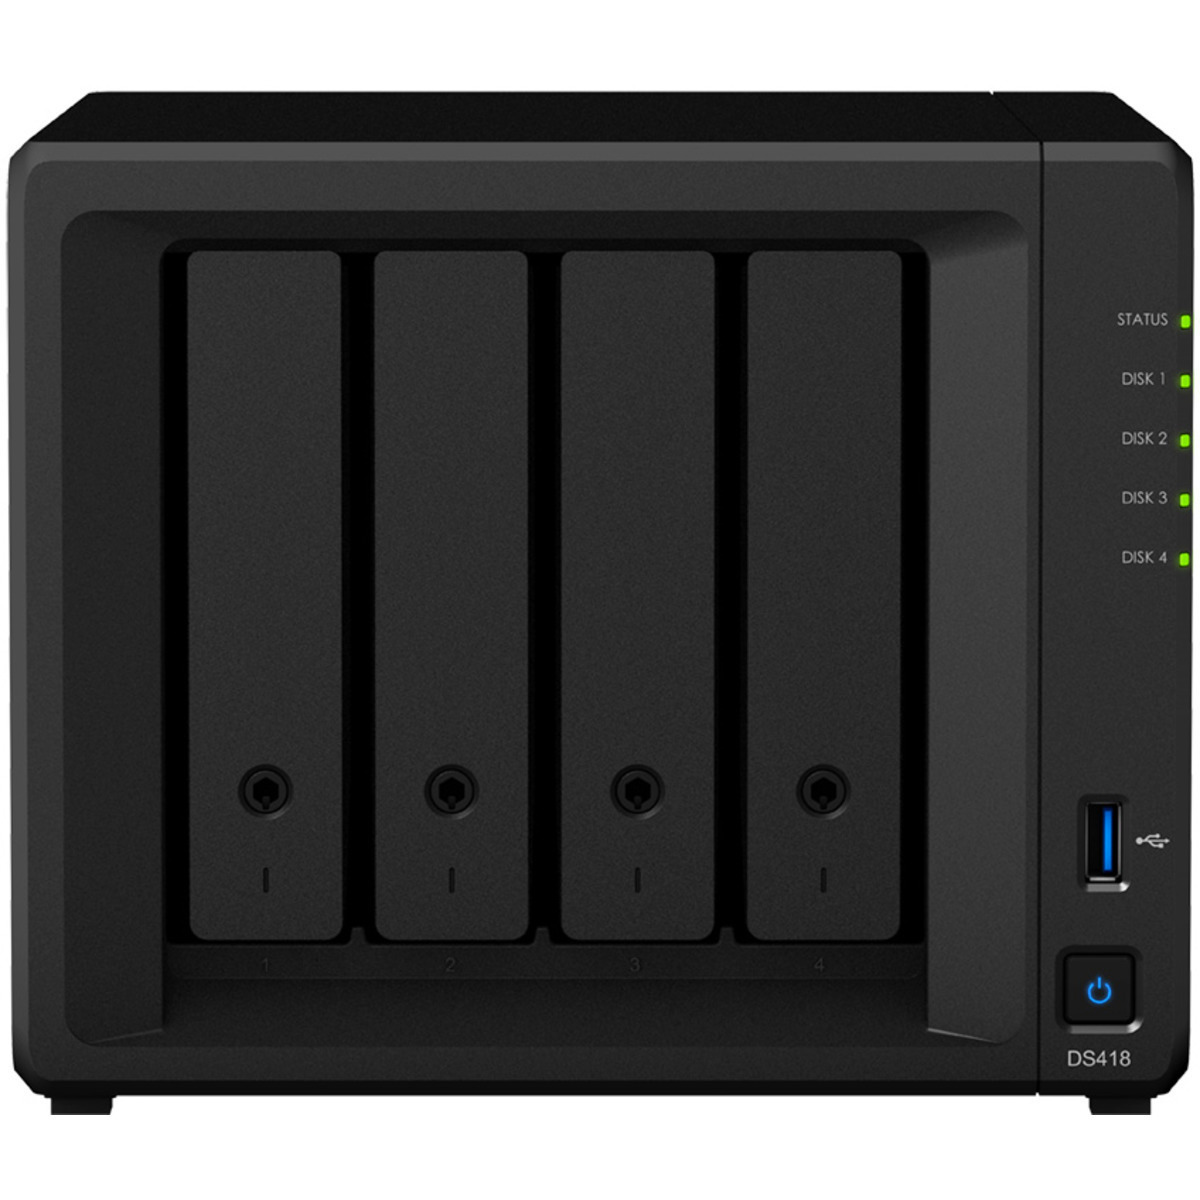 buy $1870 Synology DiskStation DS418 40tb Desktop NAS - Network Attached Storage Device 4x10000gb Western Digital Red NAS WD100EFAX 3.5 IntelliPower SATA 6Gb/s HDD NAS Class Drives Installed - Burn-In Tested - black friday cyber monday week month christmas holiday year-end nas headquarters buy network attached storage server device das new sale raid-5 free shipping usa DiskStation DS418